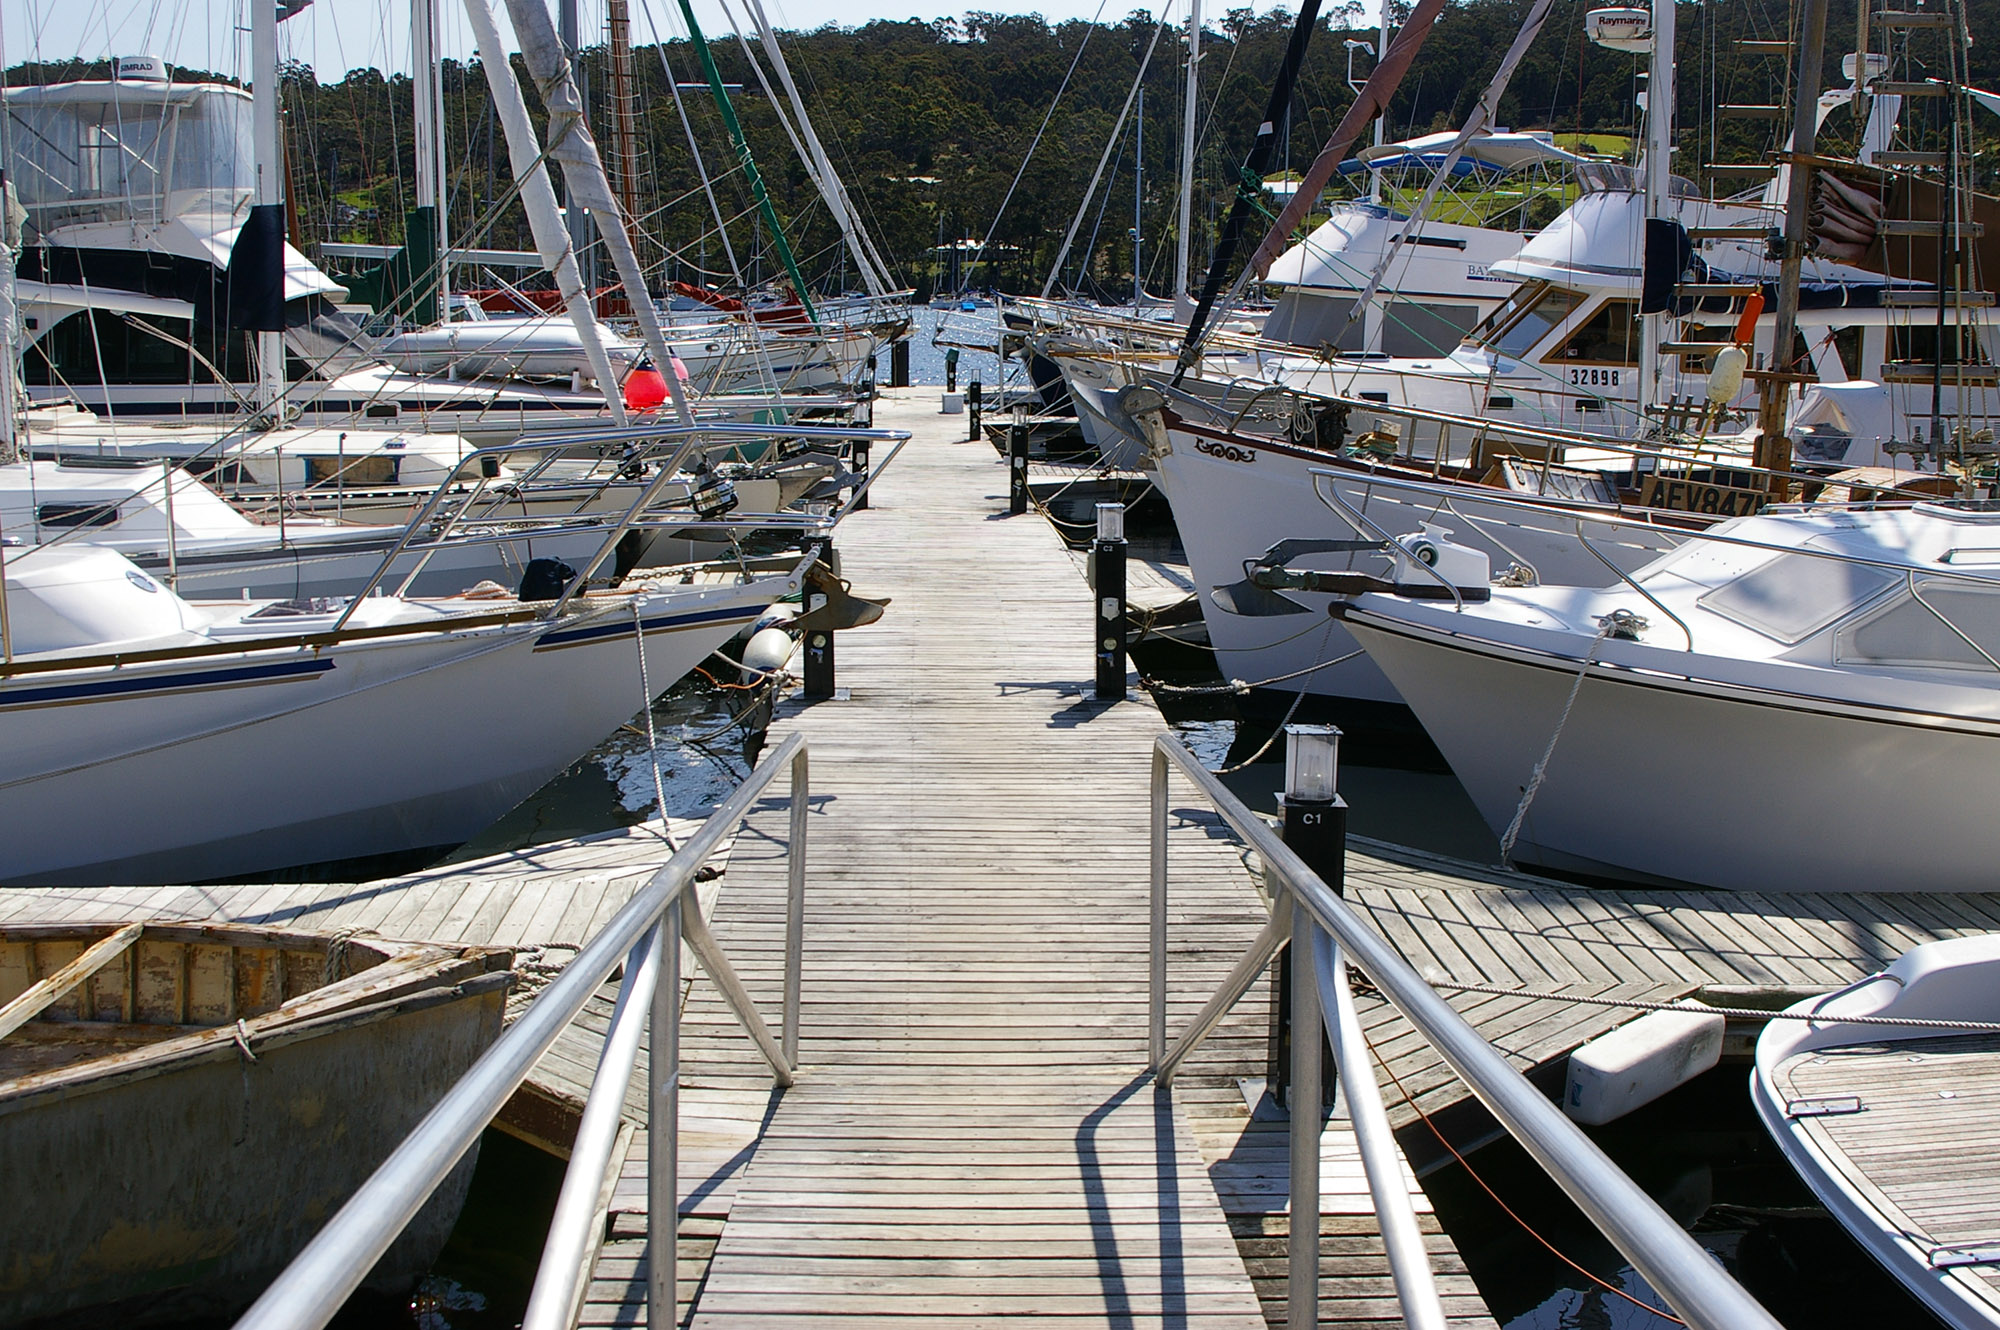 Boat docking leases